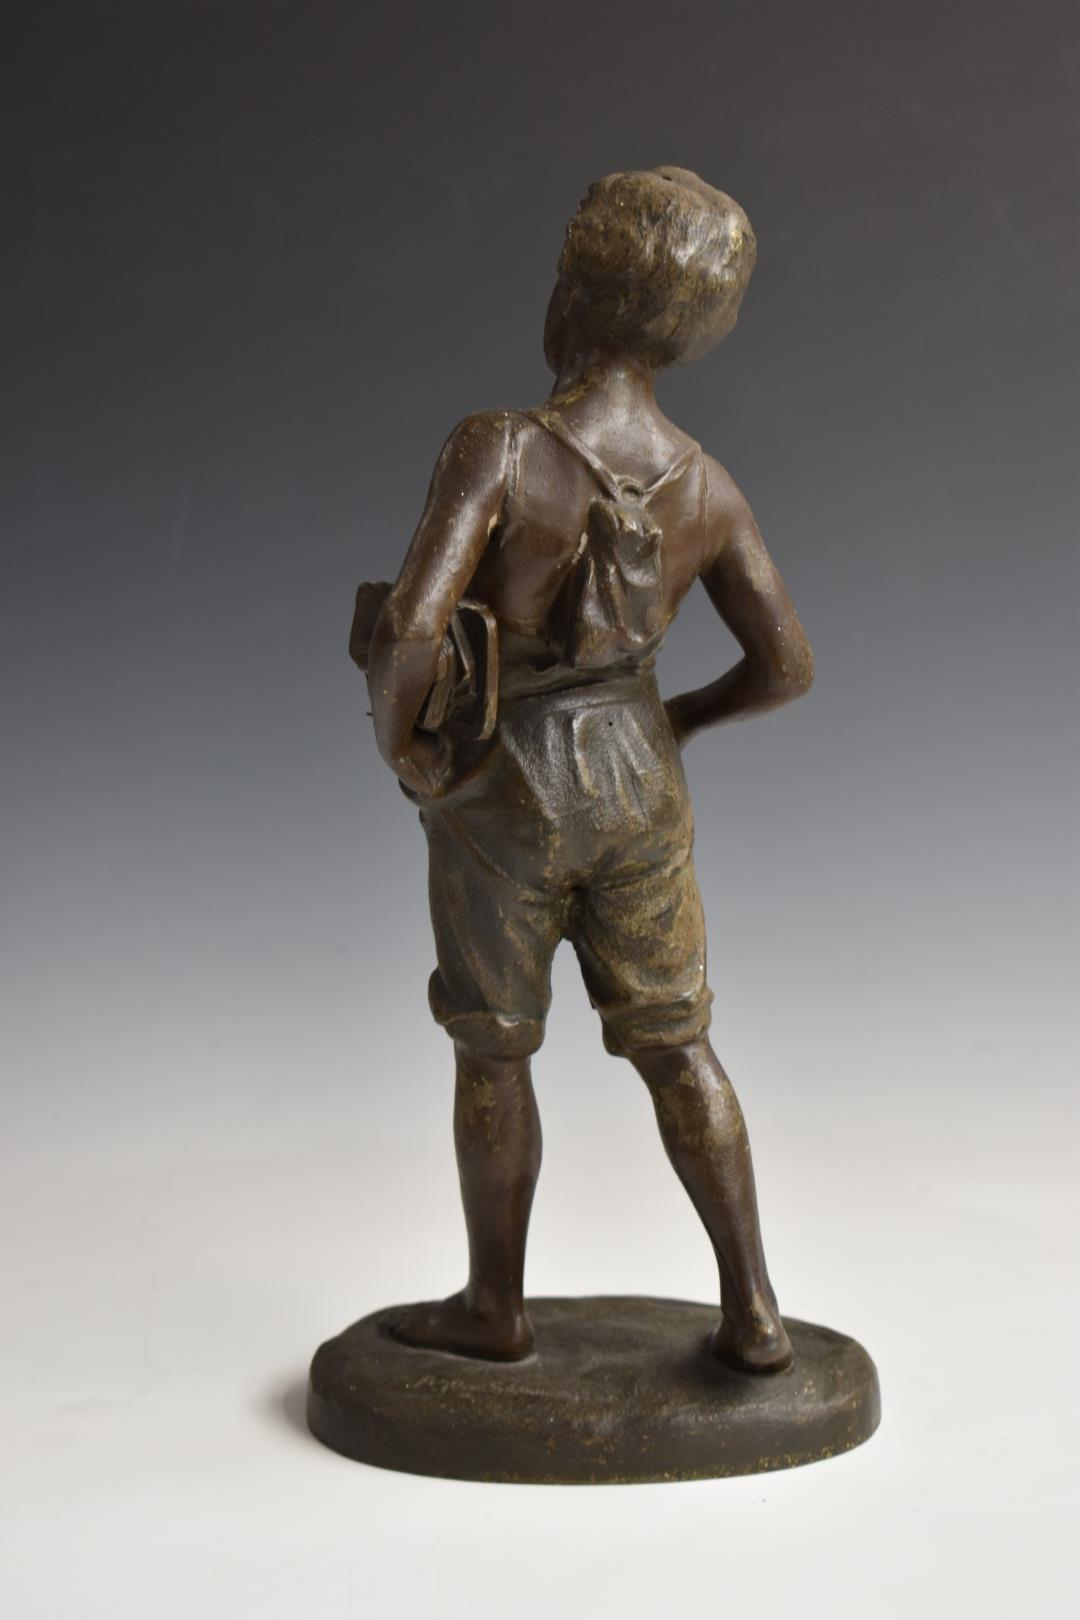 Pair of spelter figures of boys, one with books, the other with a horn, H33cm - Image 5 of 6